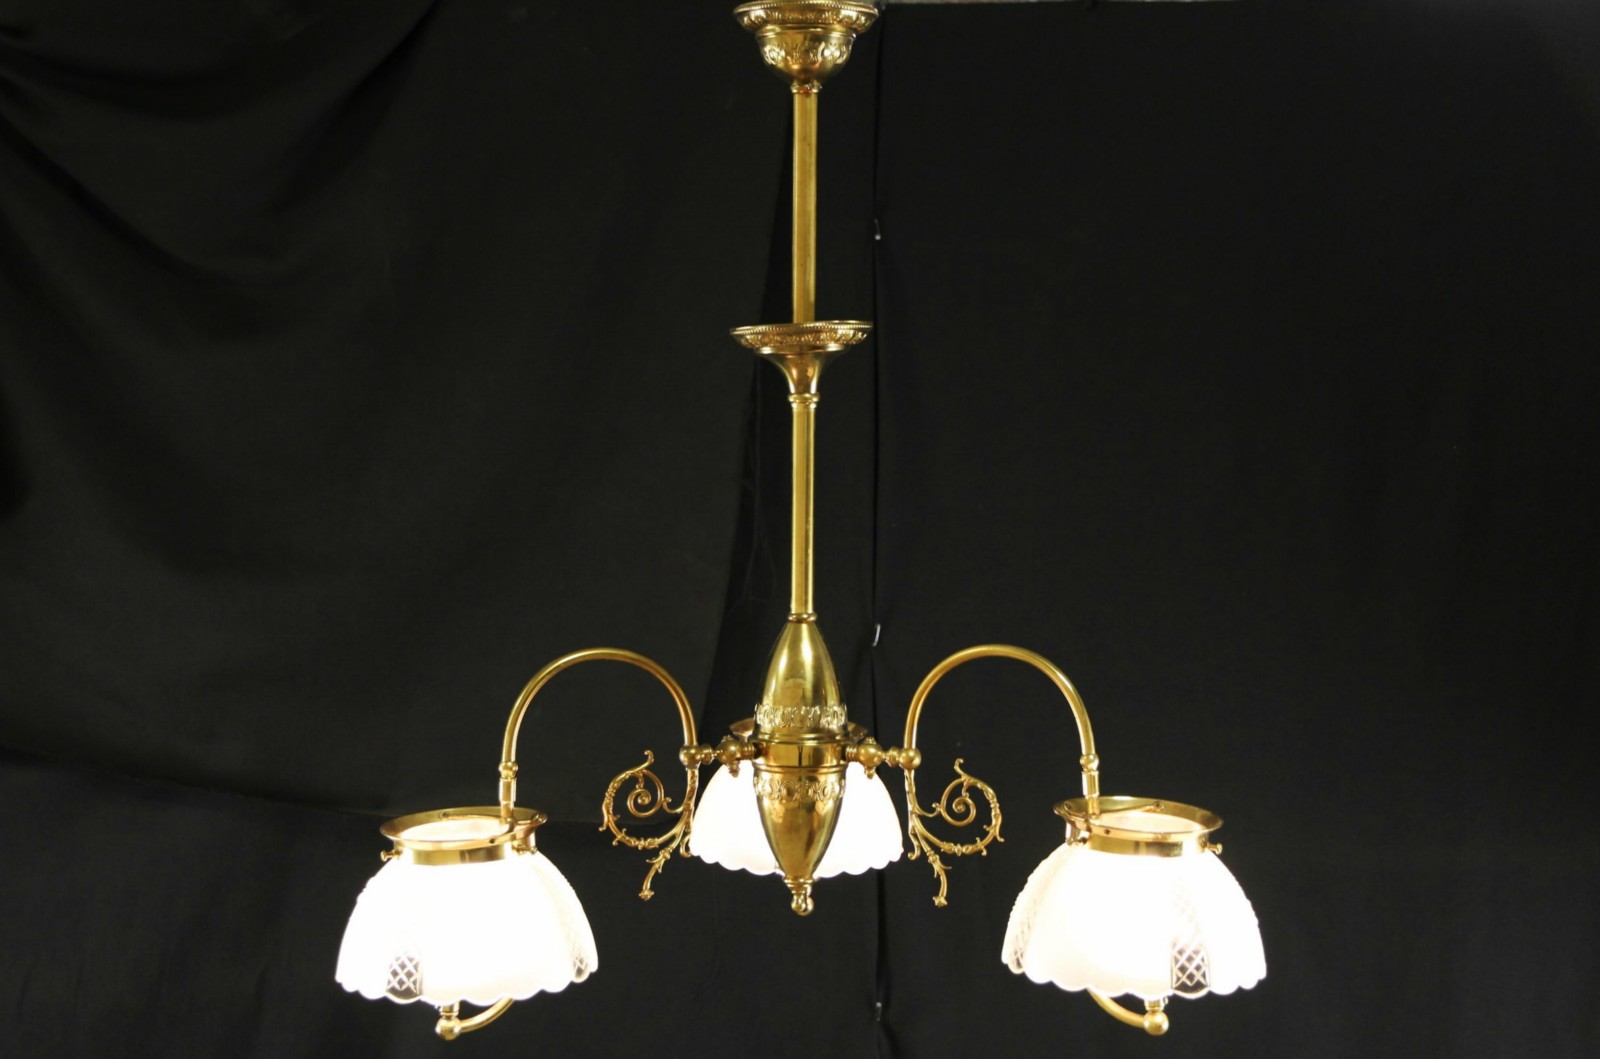 Rustic Modern Family Room Sold - Victorian 1890's Antique 3 Light Gas Chandelier